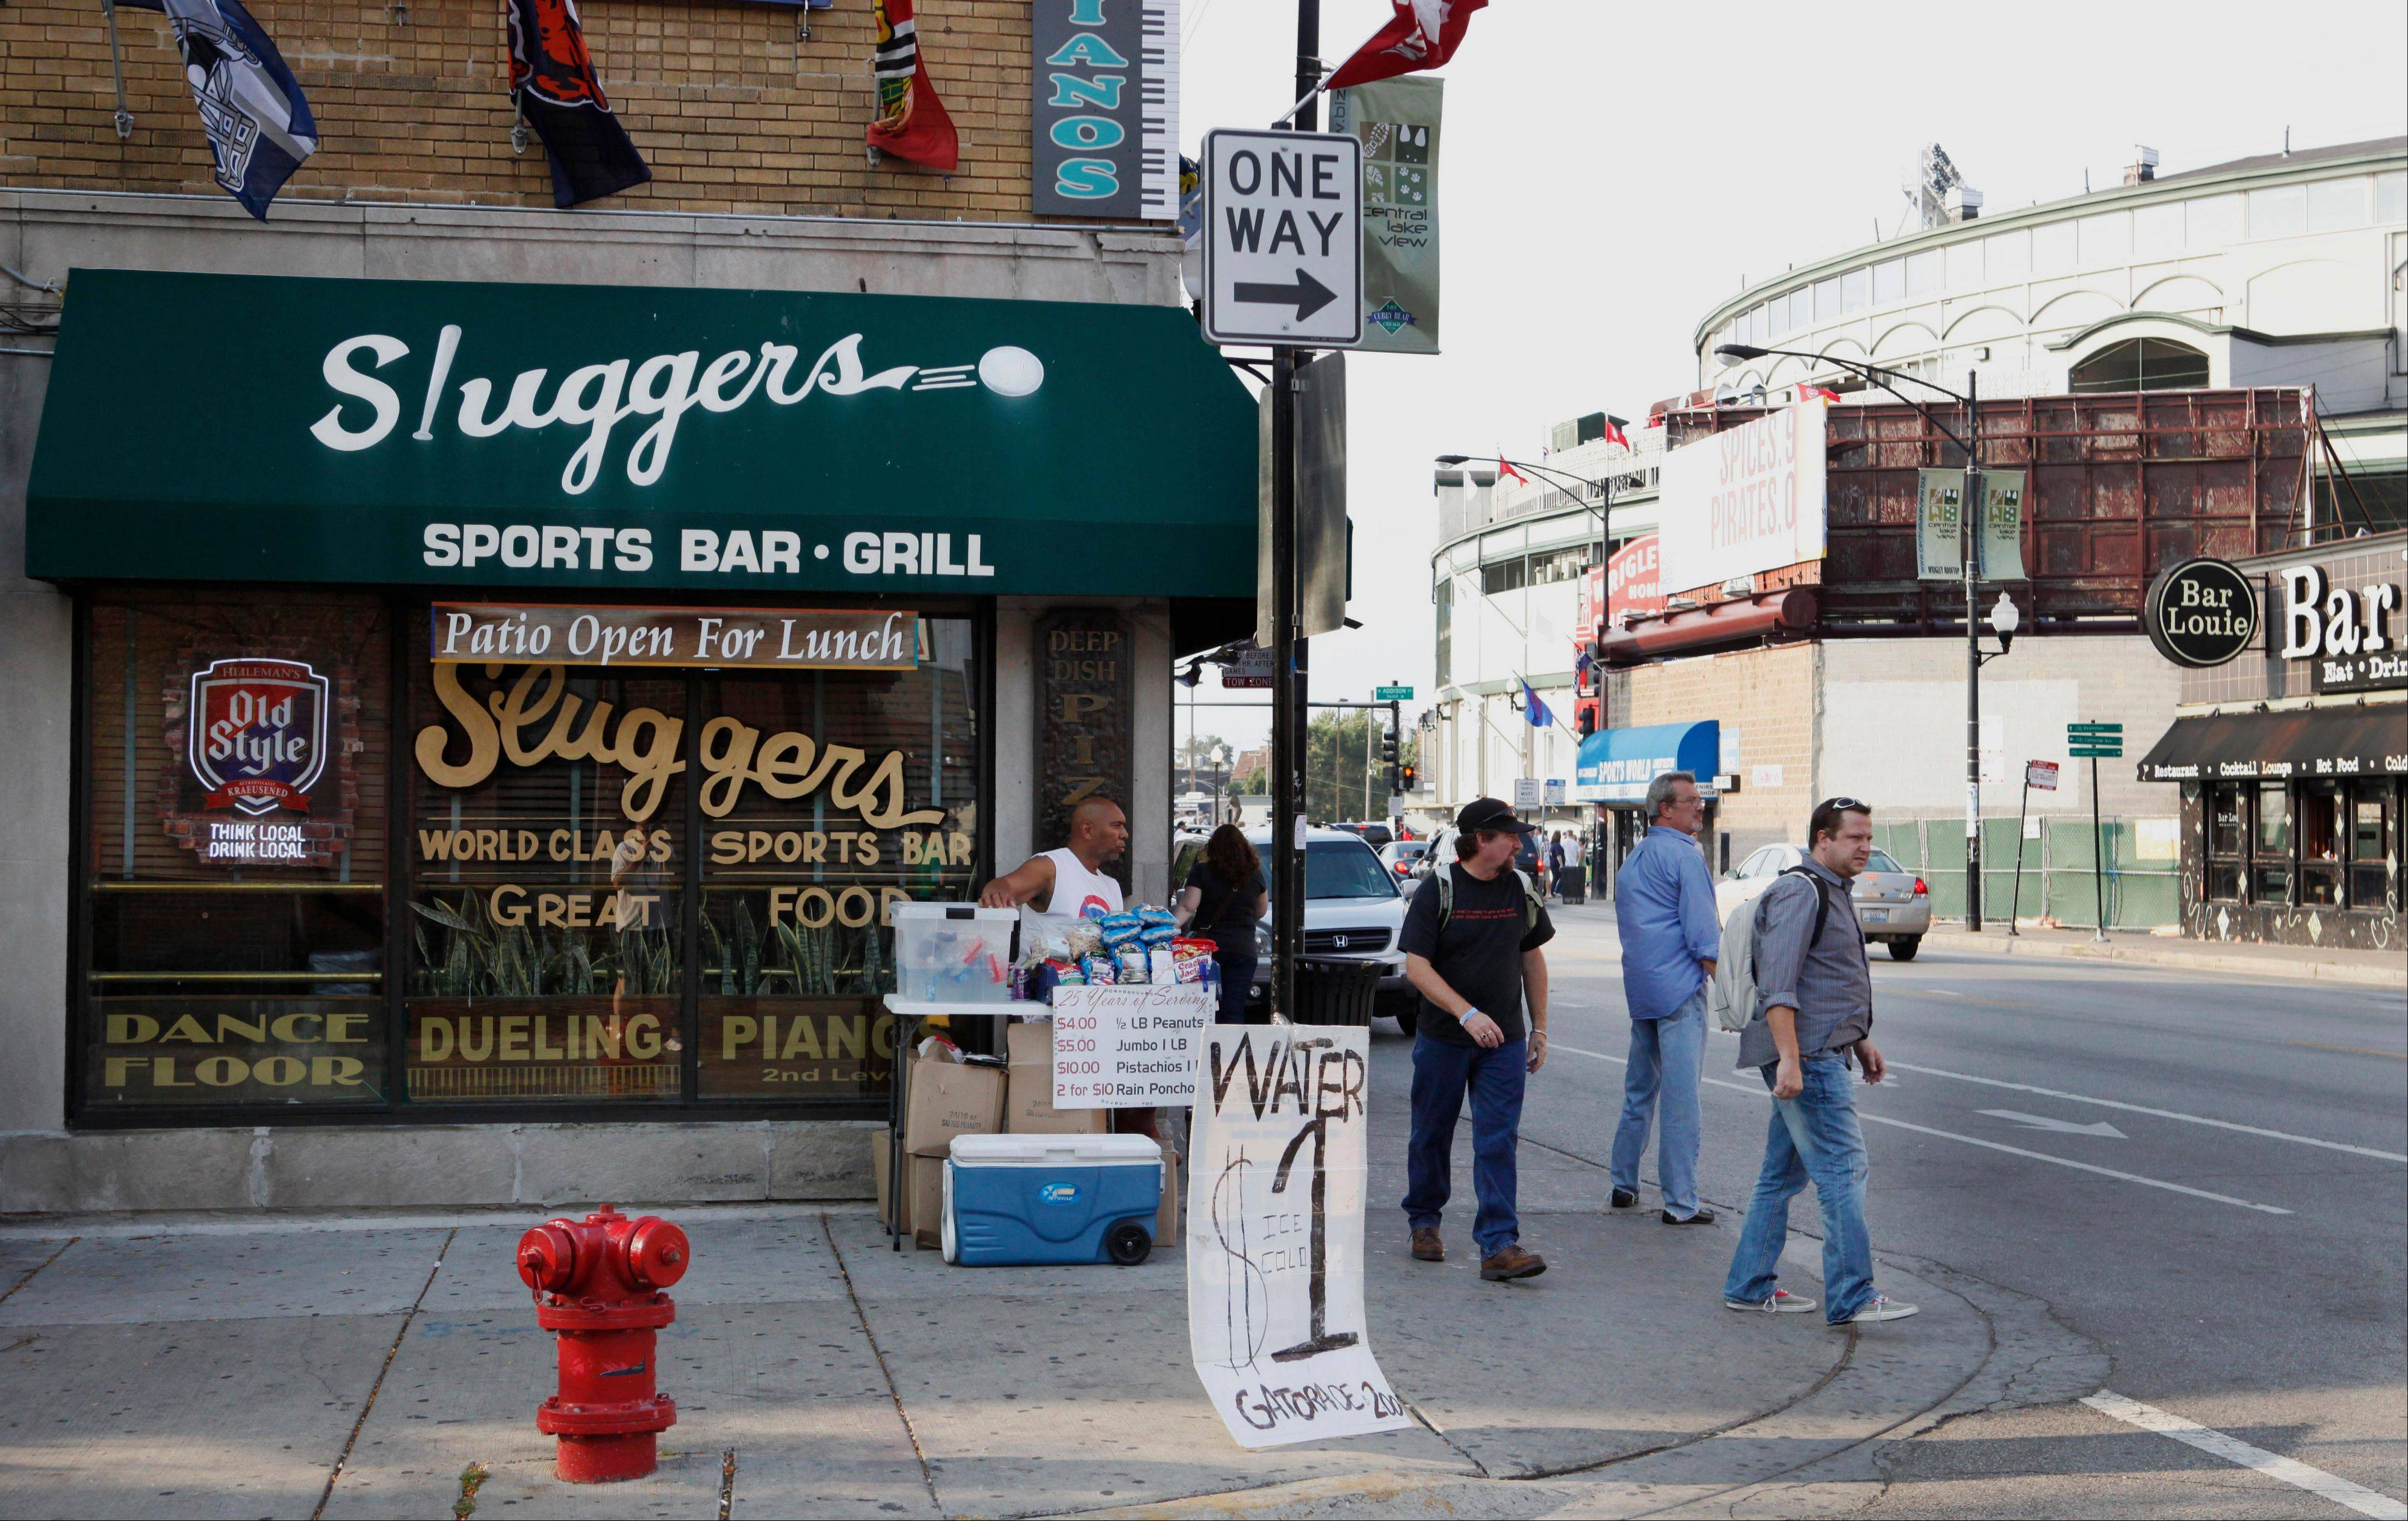 This 2010 file photo shows Sluggers Sports Bar and Grill near Wrigley Field, background, before a Chicago Cubs baseball game in Chicago.